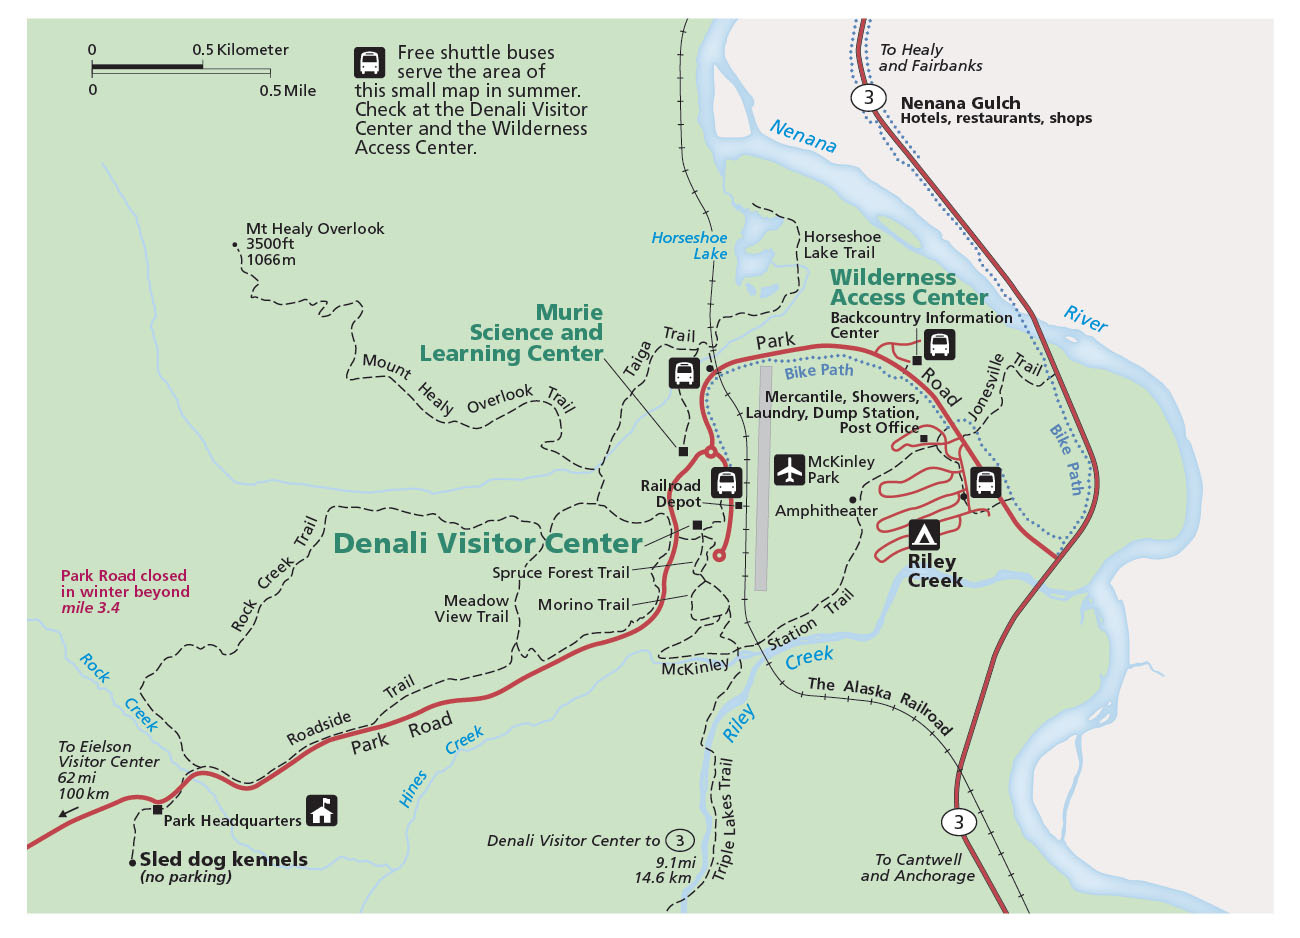 Denali Maps NPMapscom just free maps period